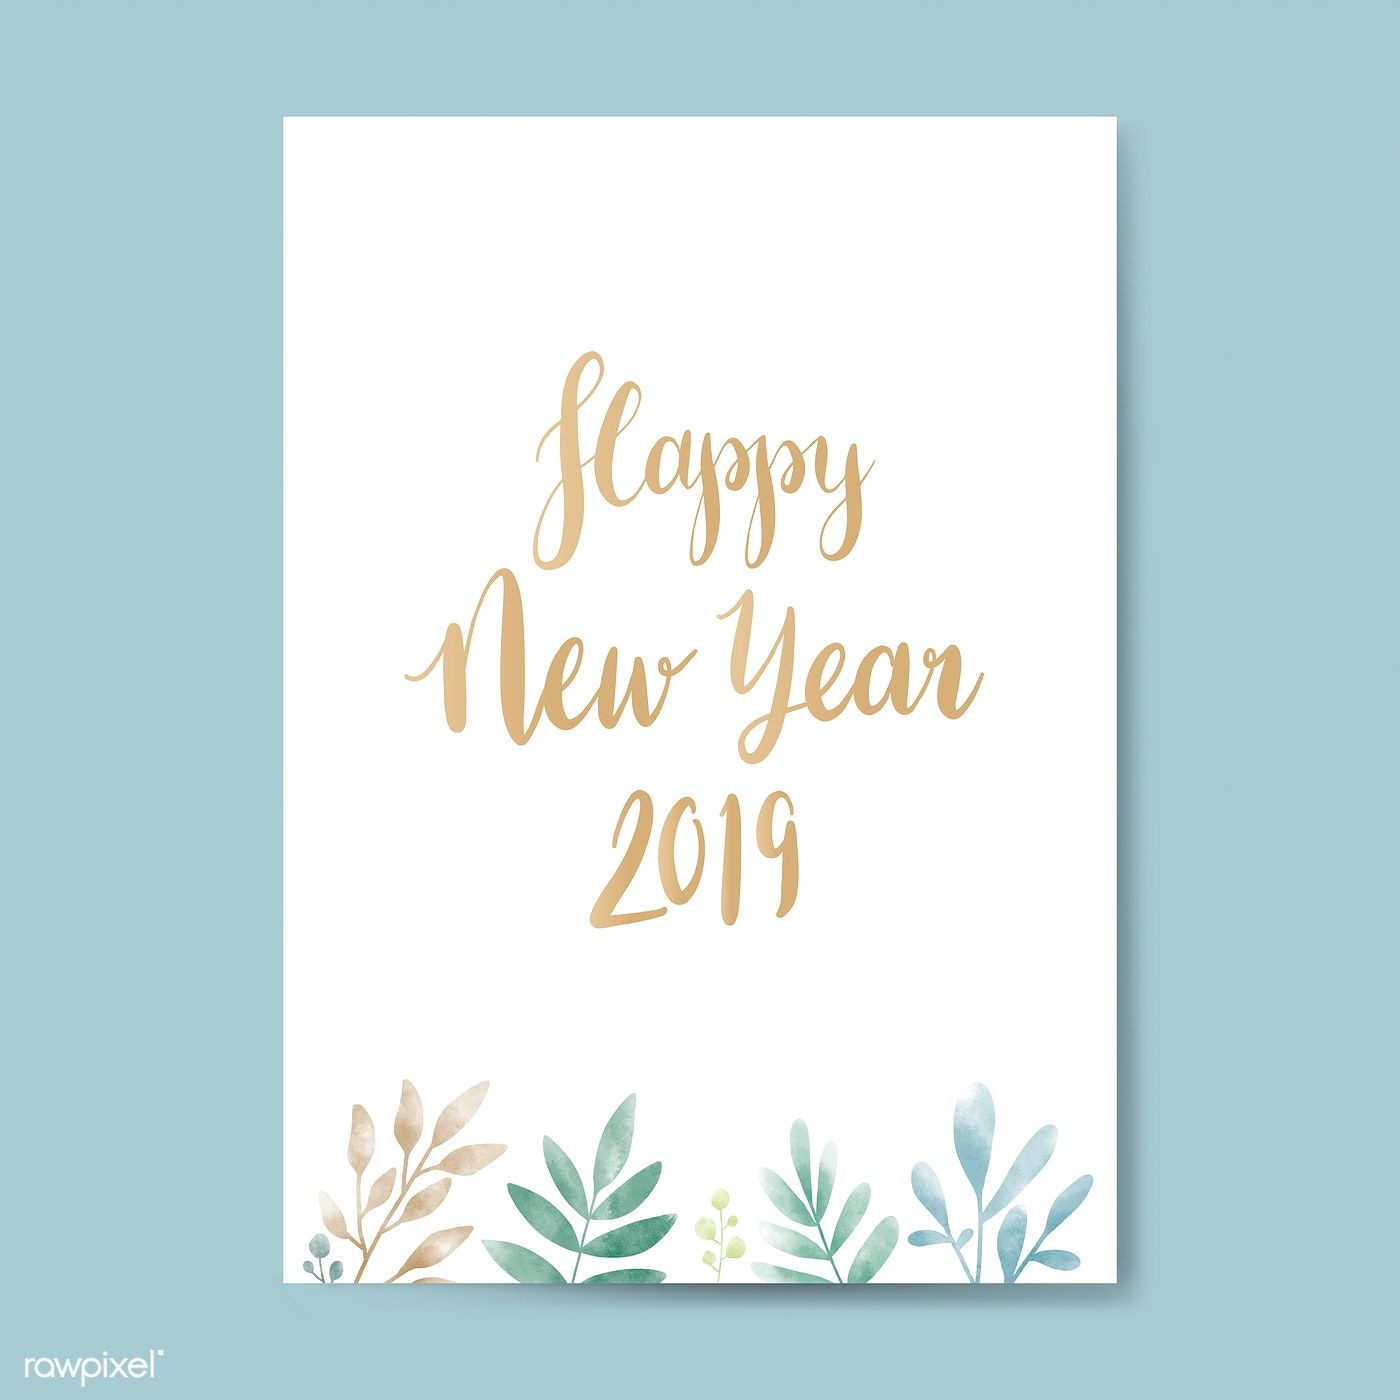 Download Premium Vector Of Happy New Year 2019 Watercolor Card